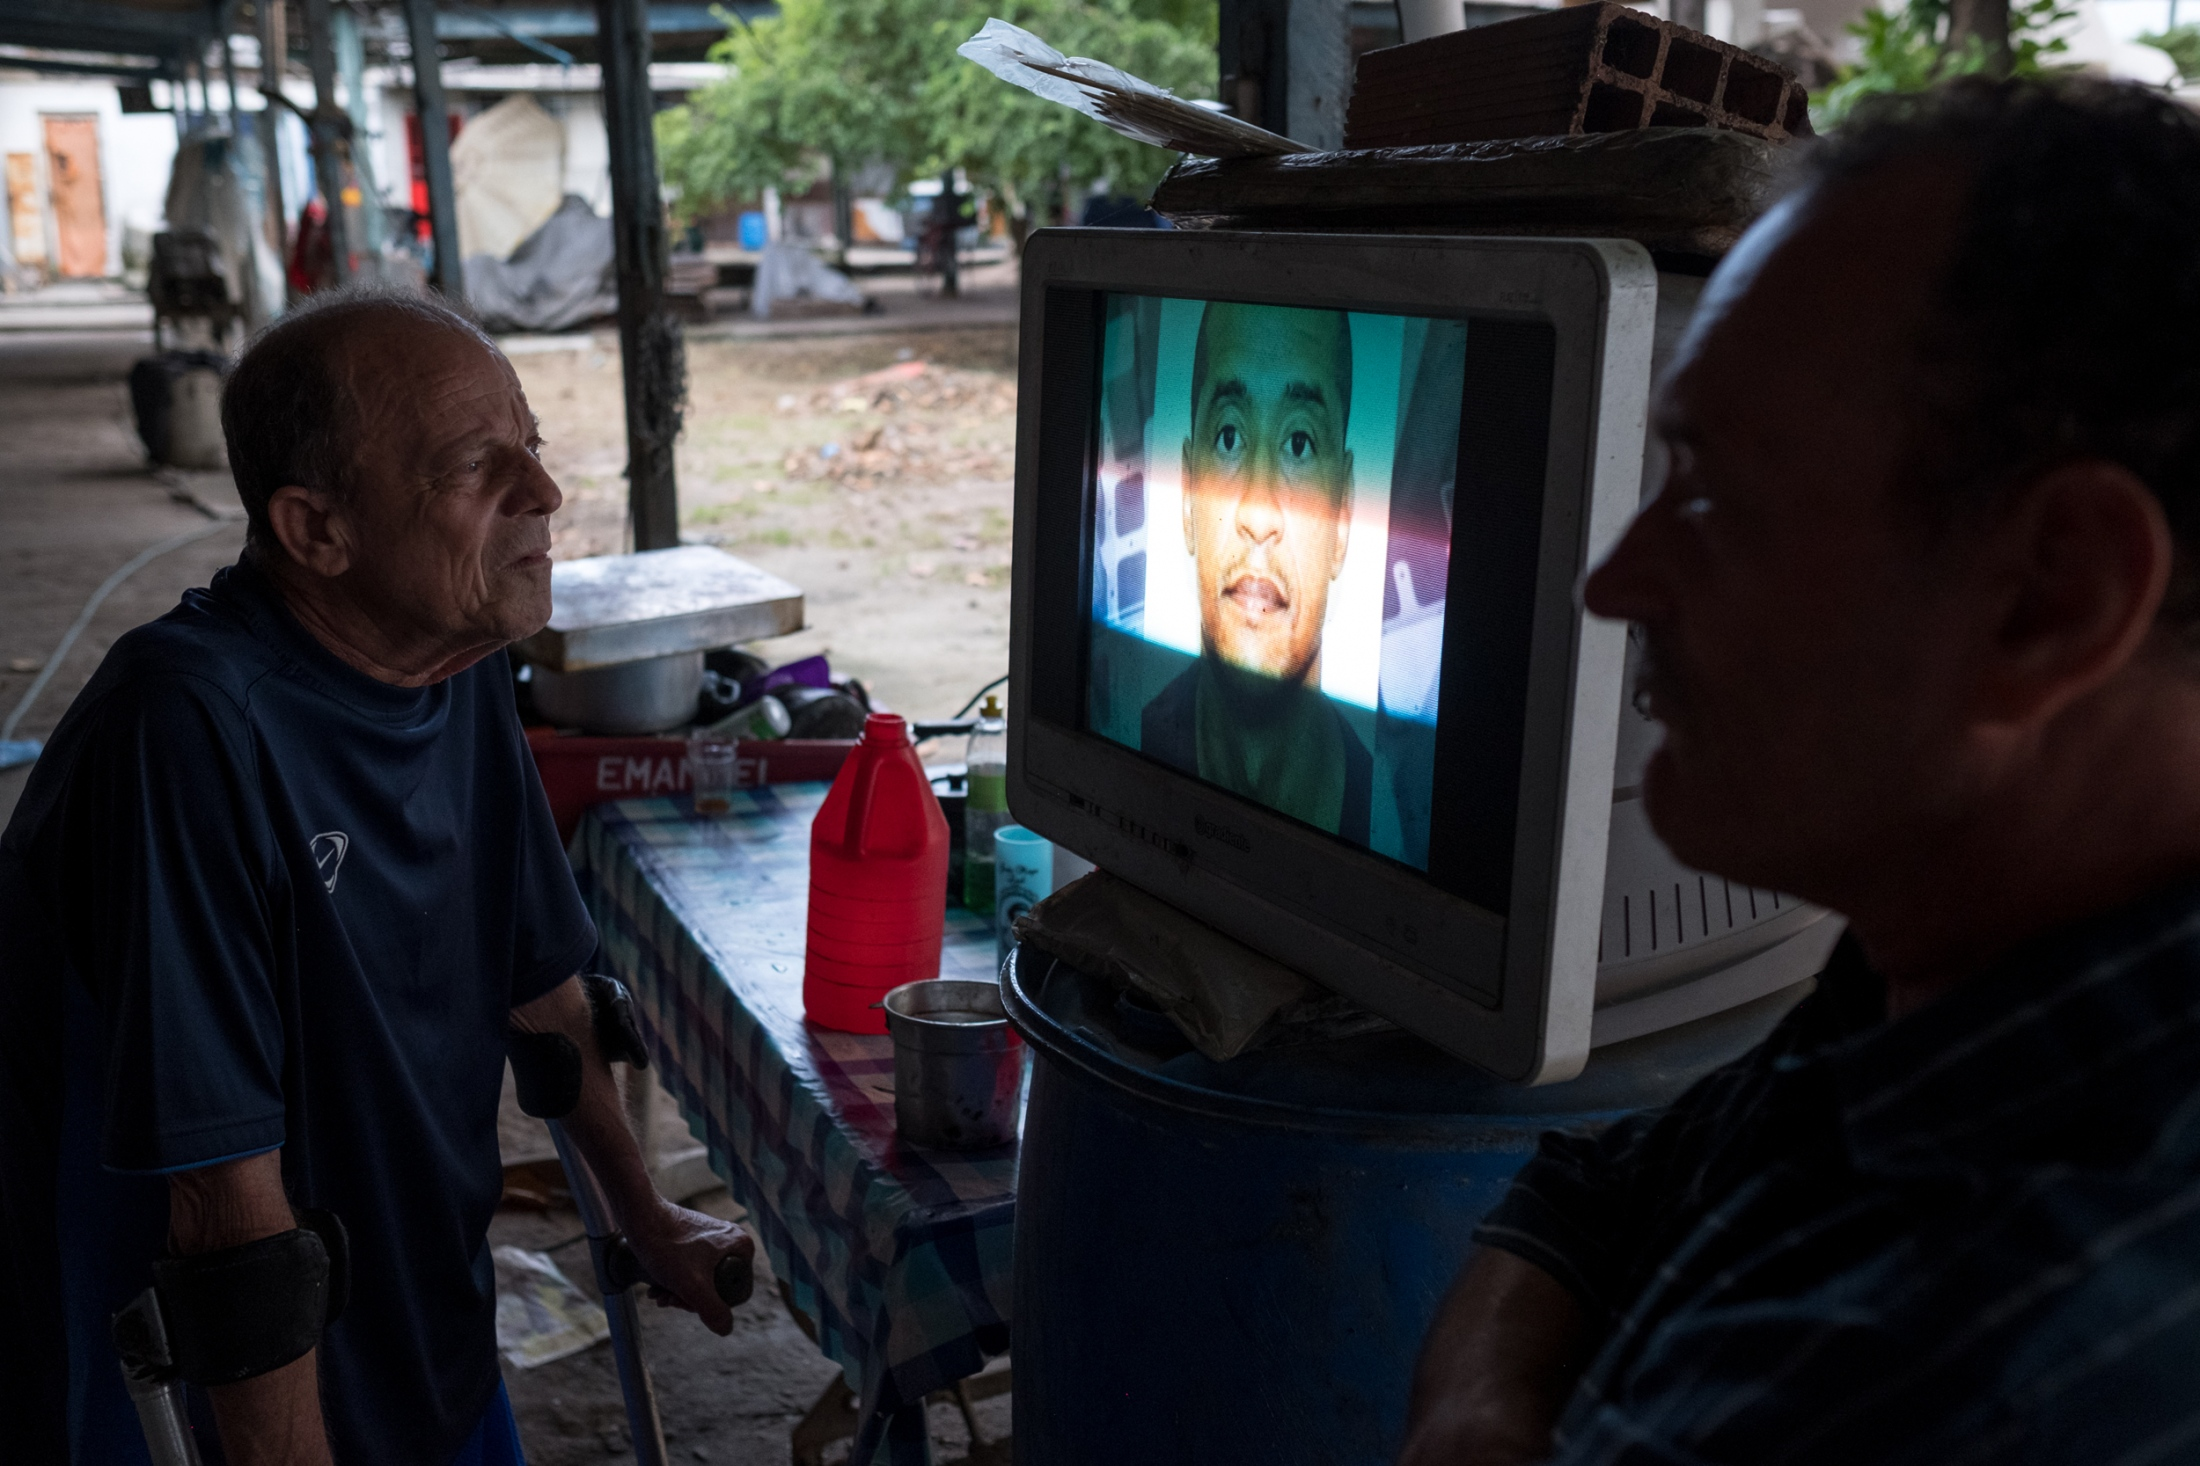 Luis and listens close to the television for a report on a man who lives nearby and was alleged to have murdered his sister and thrown her body in the Guanabara bay. As well as being polluted by sewage and industry the bay is also a deposit for the remains of victims of the violence that plagues Rio and Brazil.